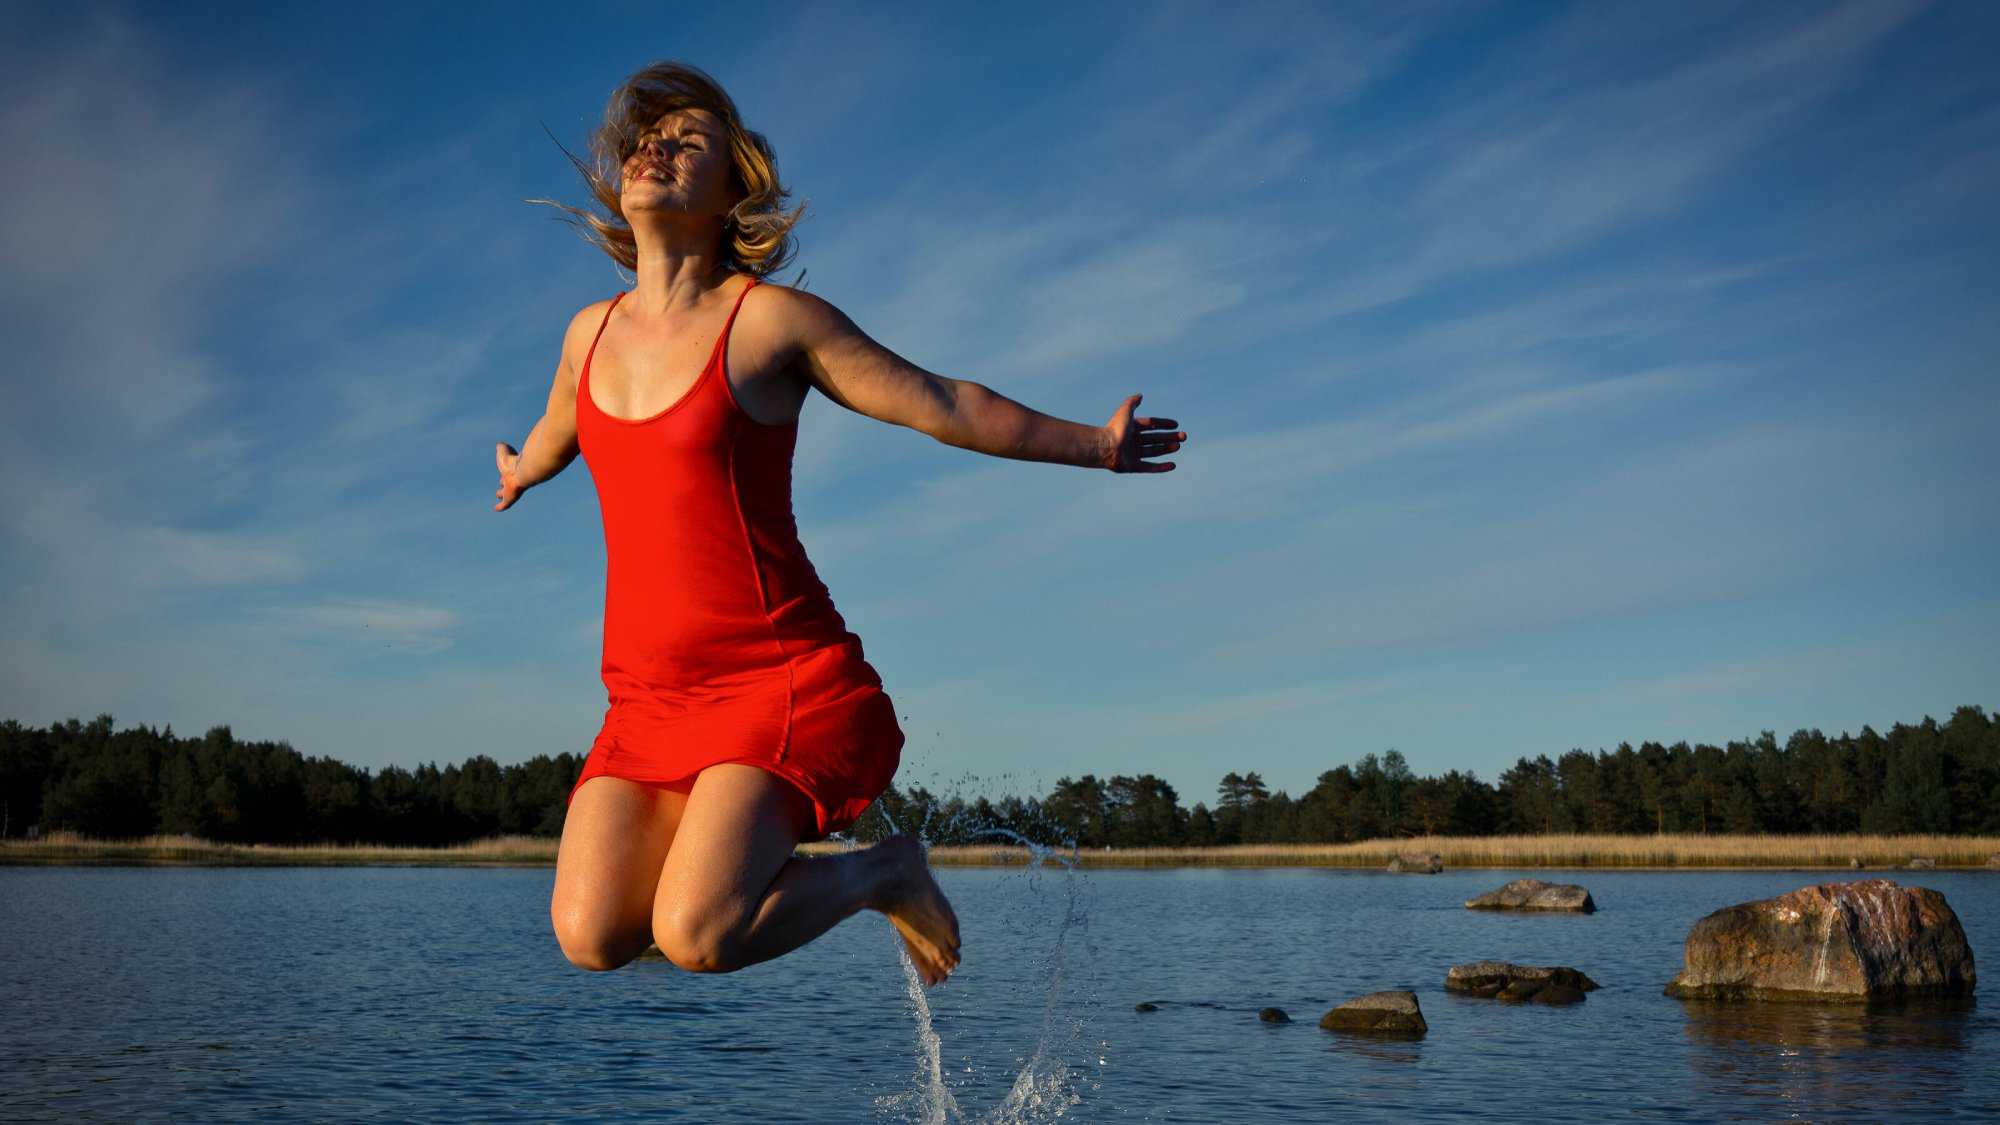 woman jumping in the air next to lake